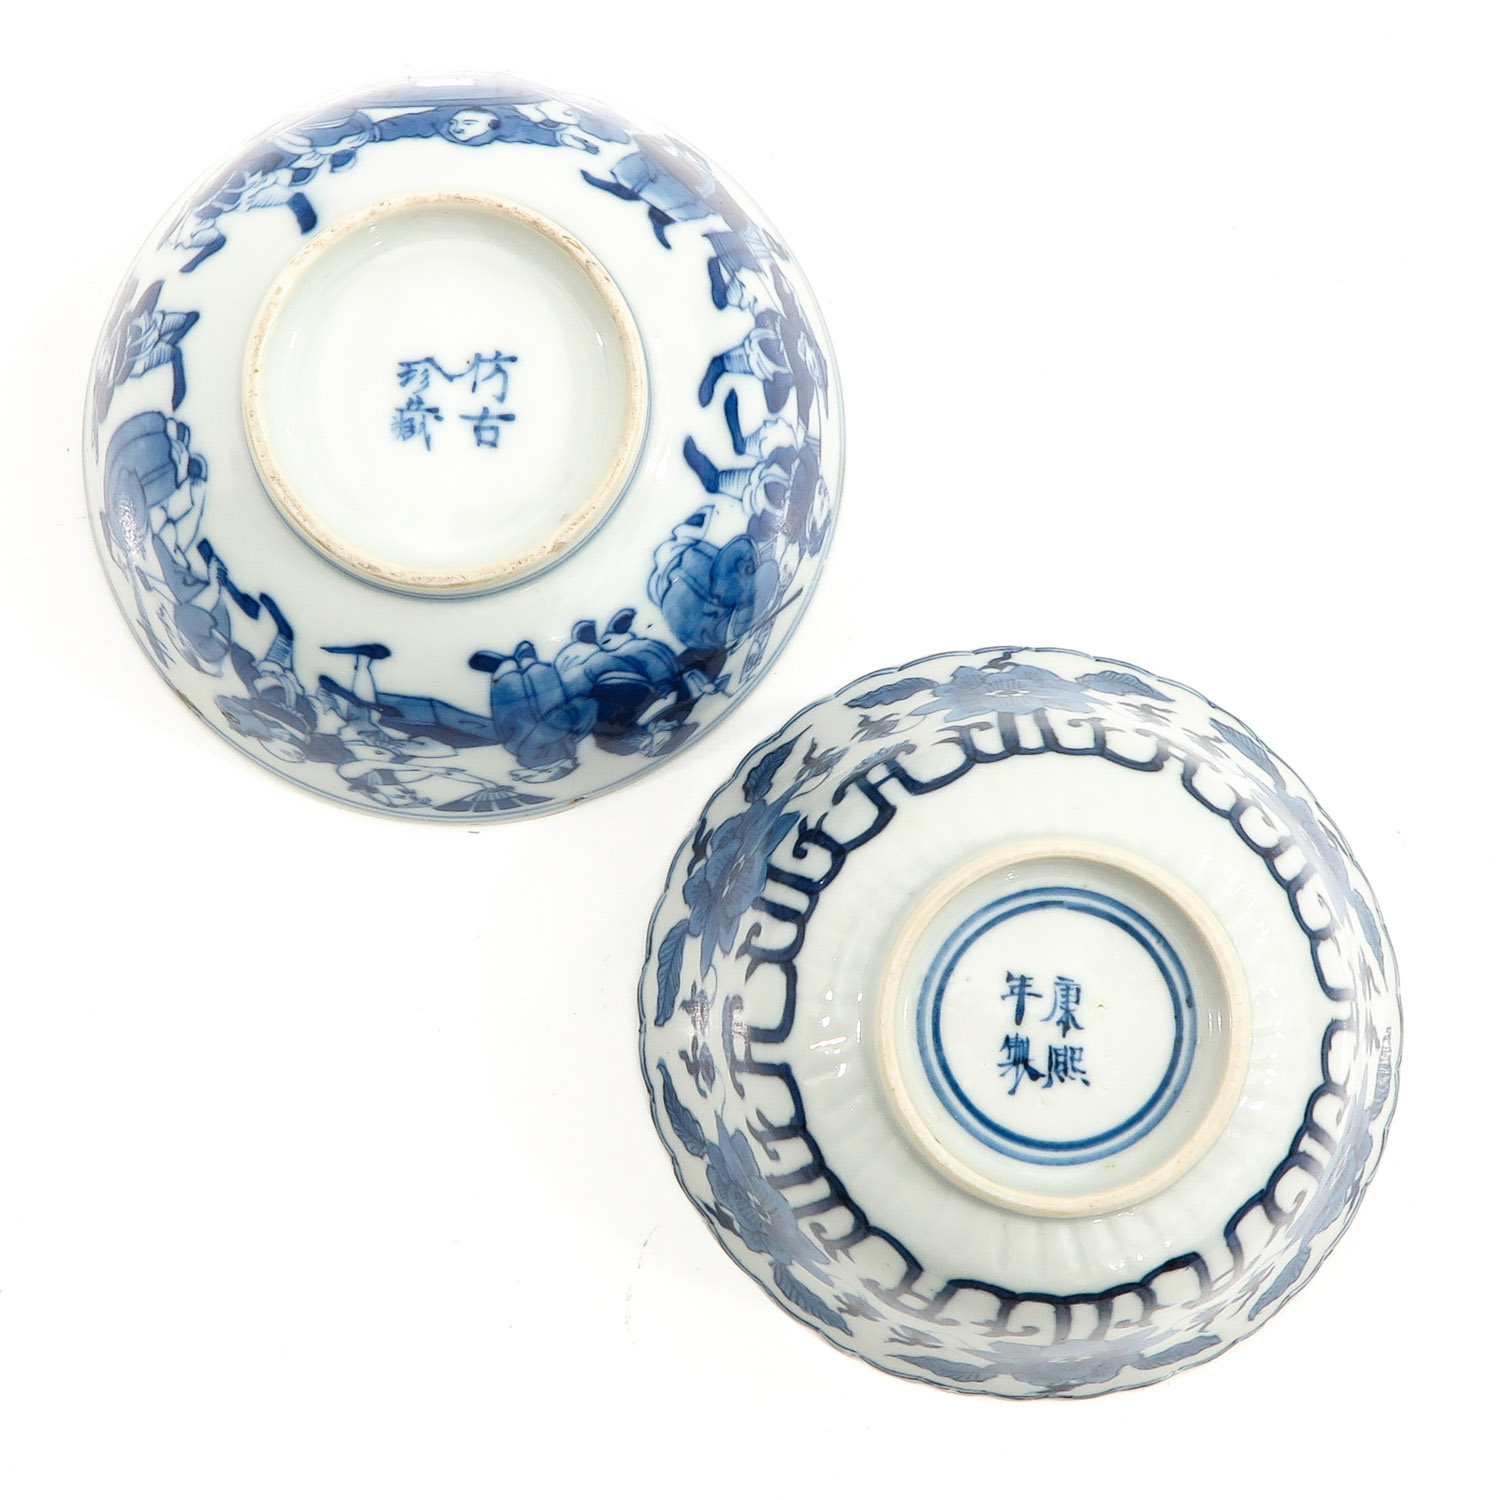 A Lot of 2 Blue and White Bowls - Image 6 of 10